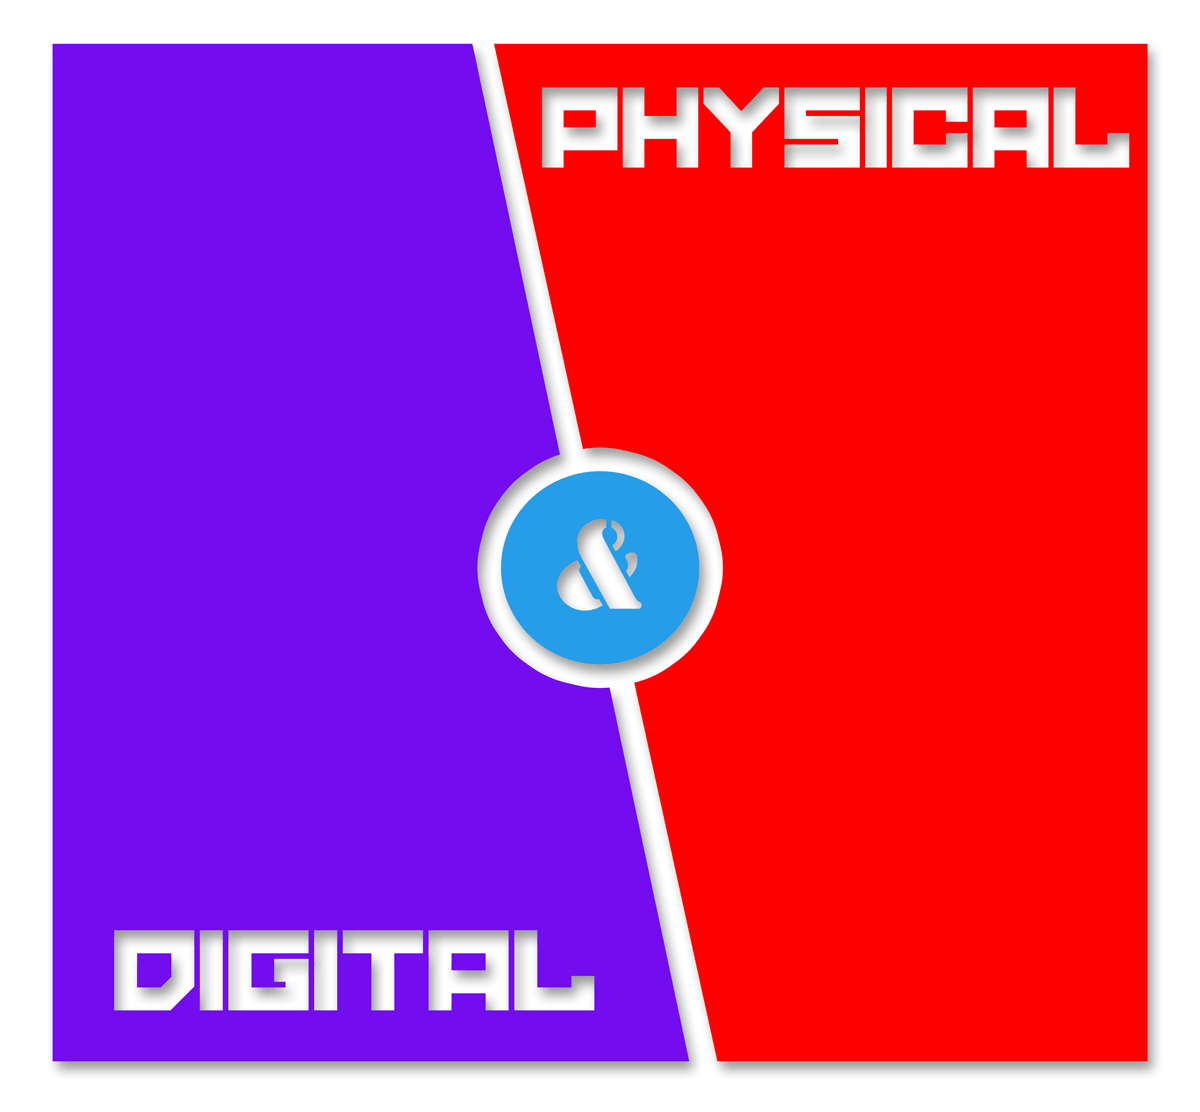 Digital & Physical Goods